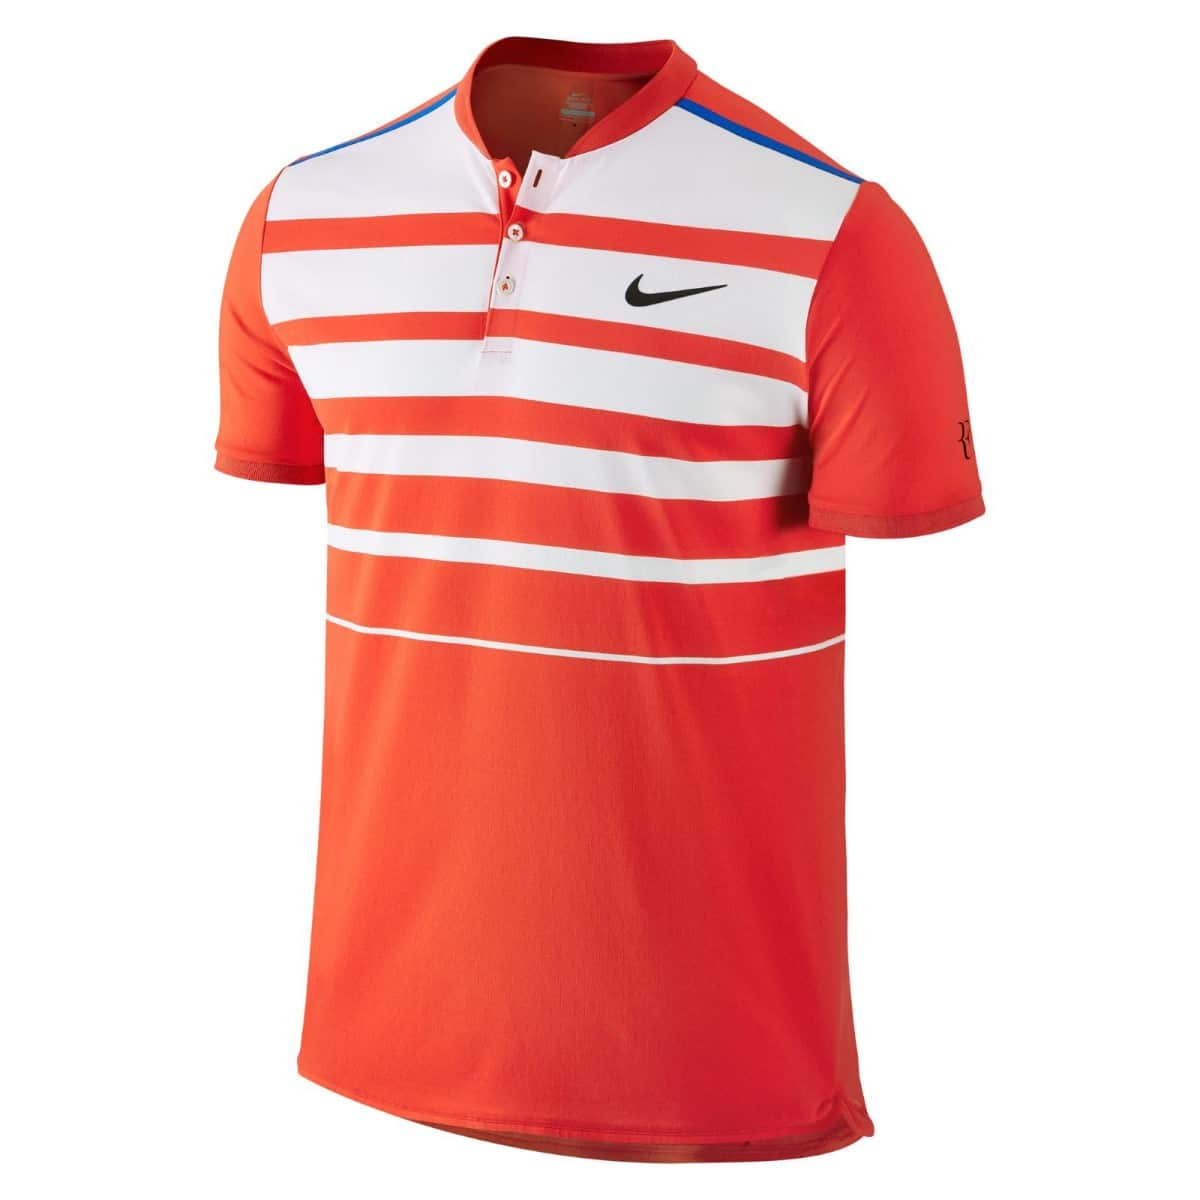 nike tennis shirt stripe on back